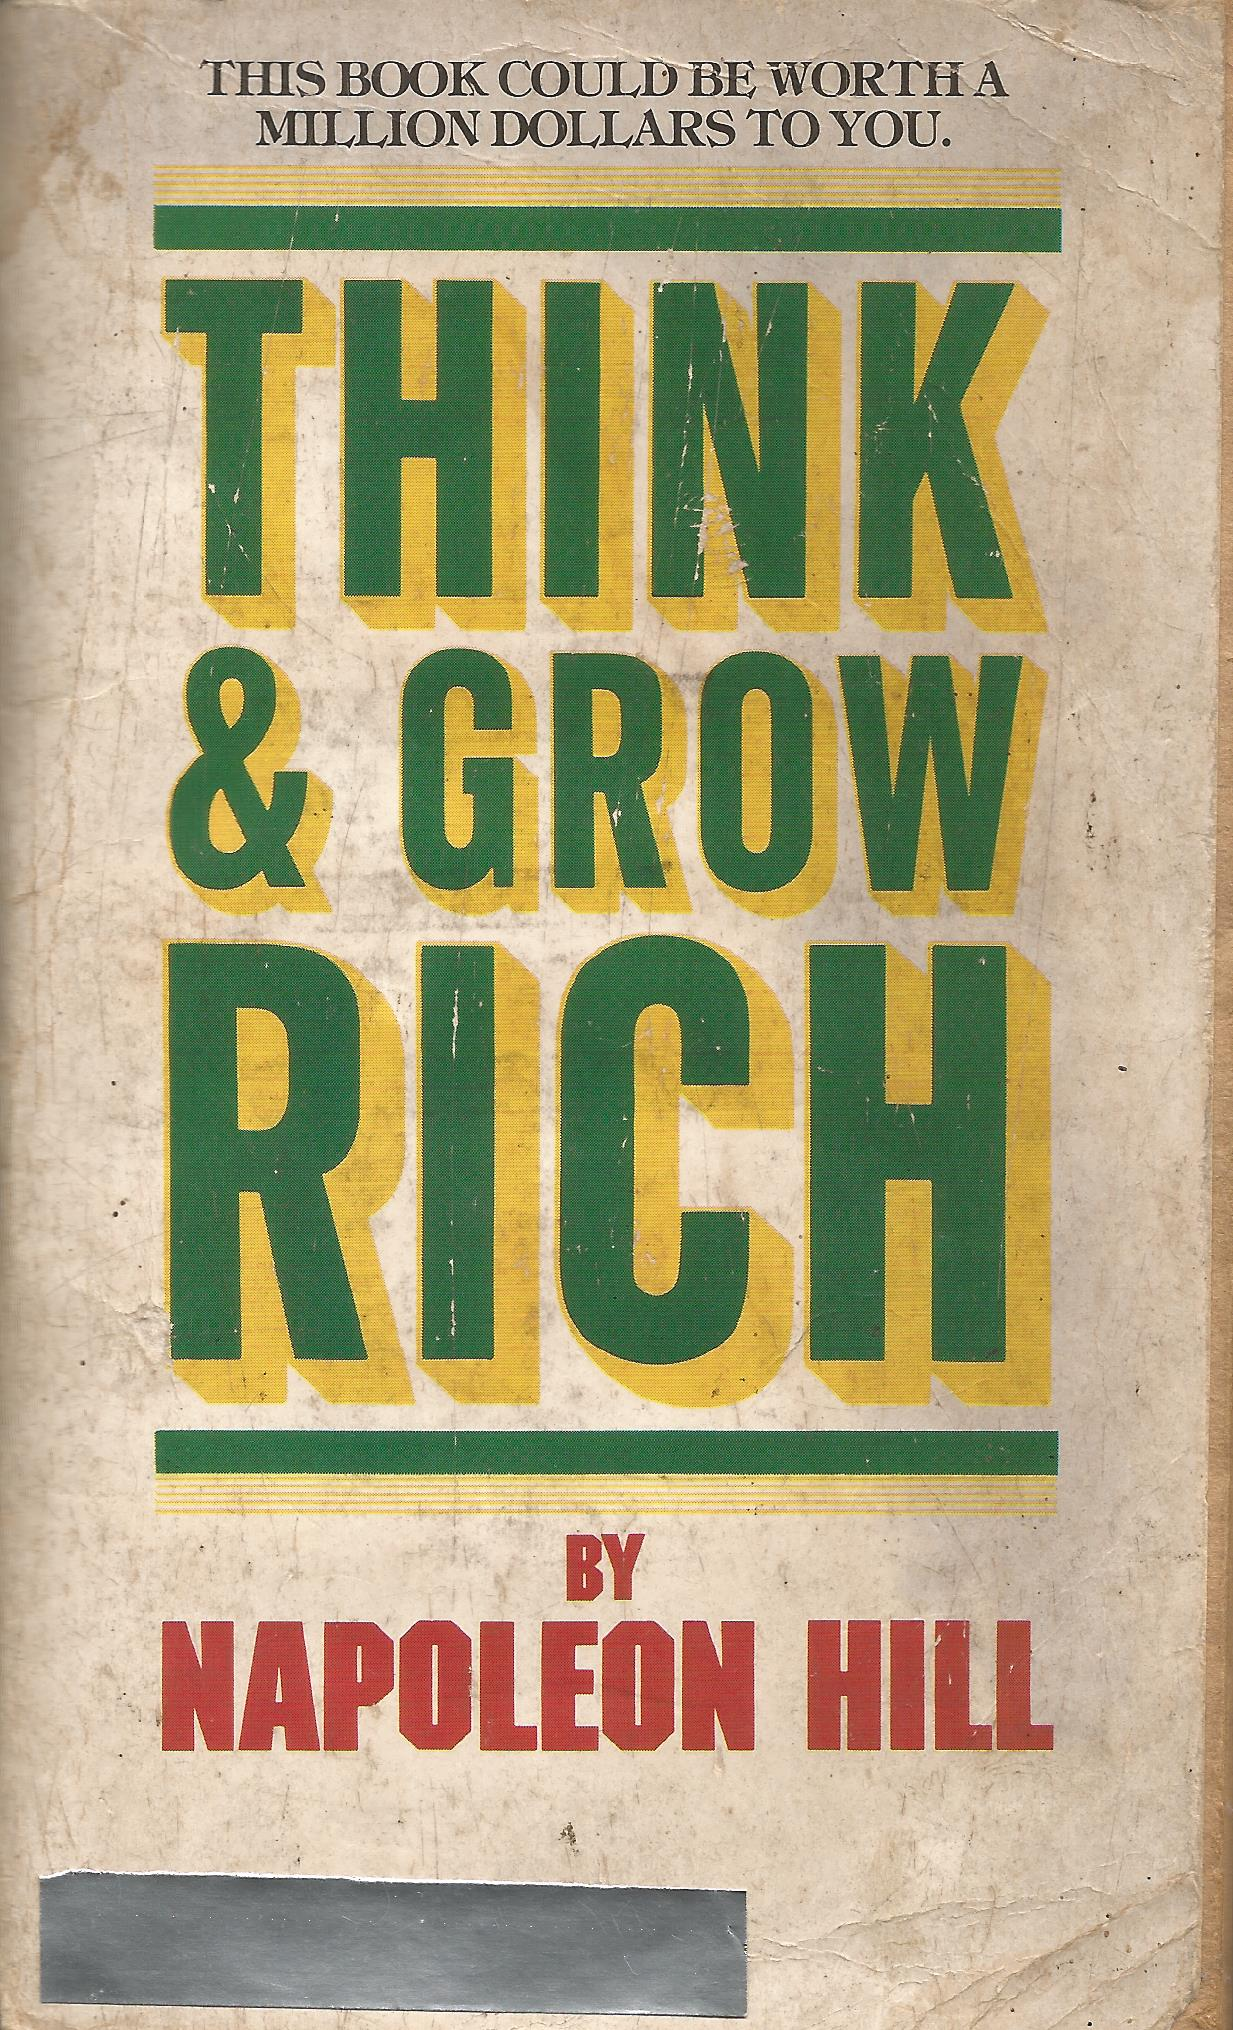 think-grow-rich-book-cover-2